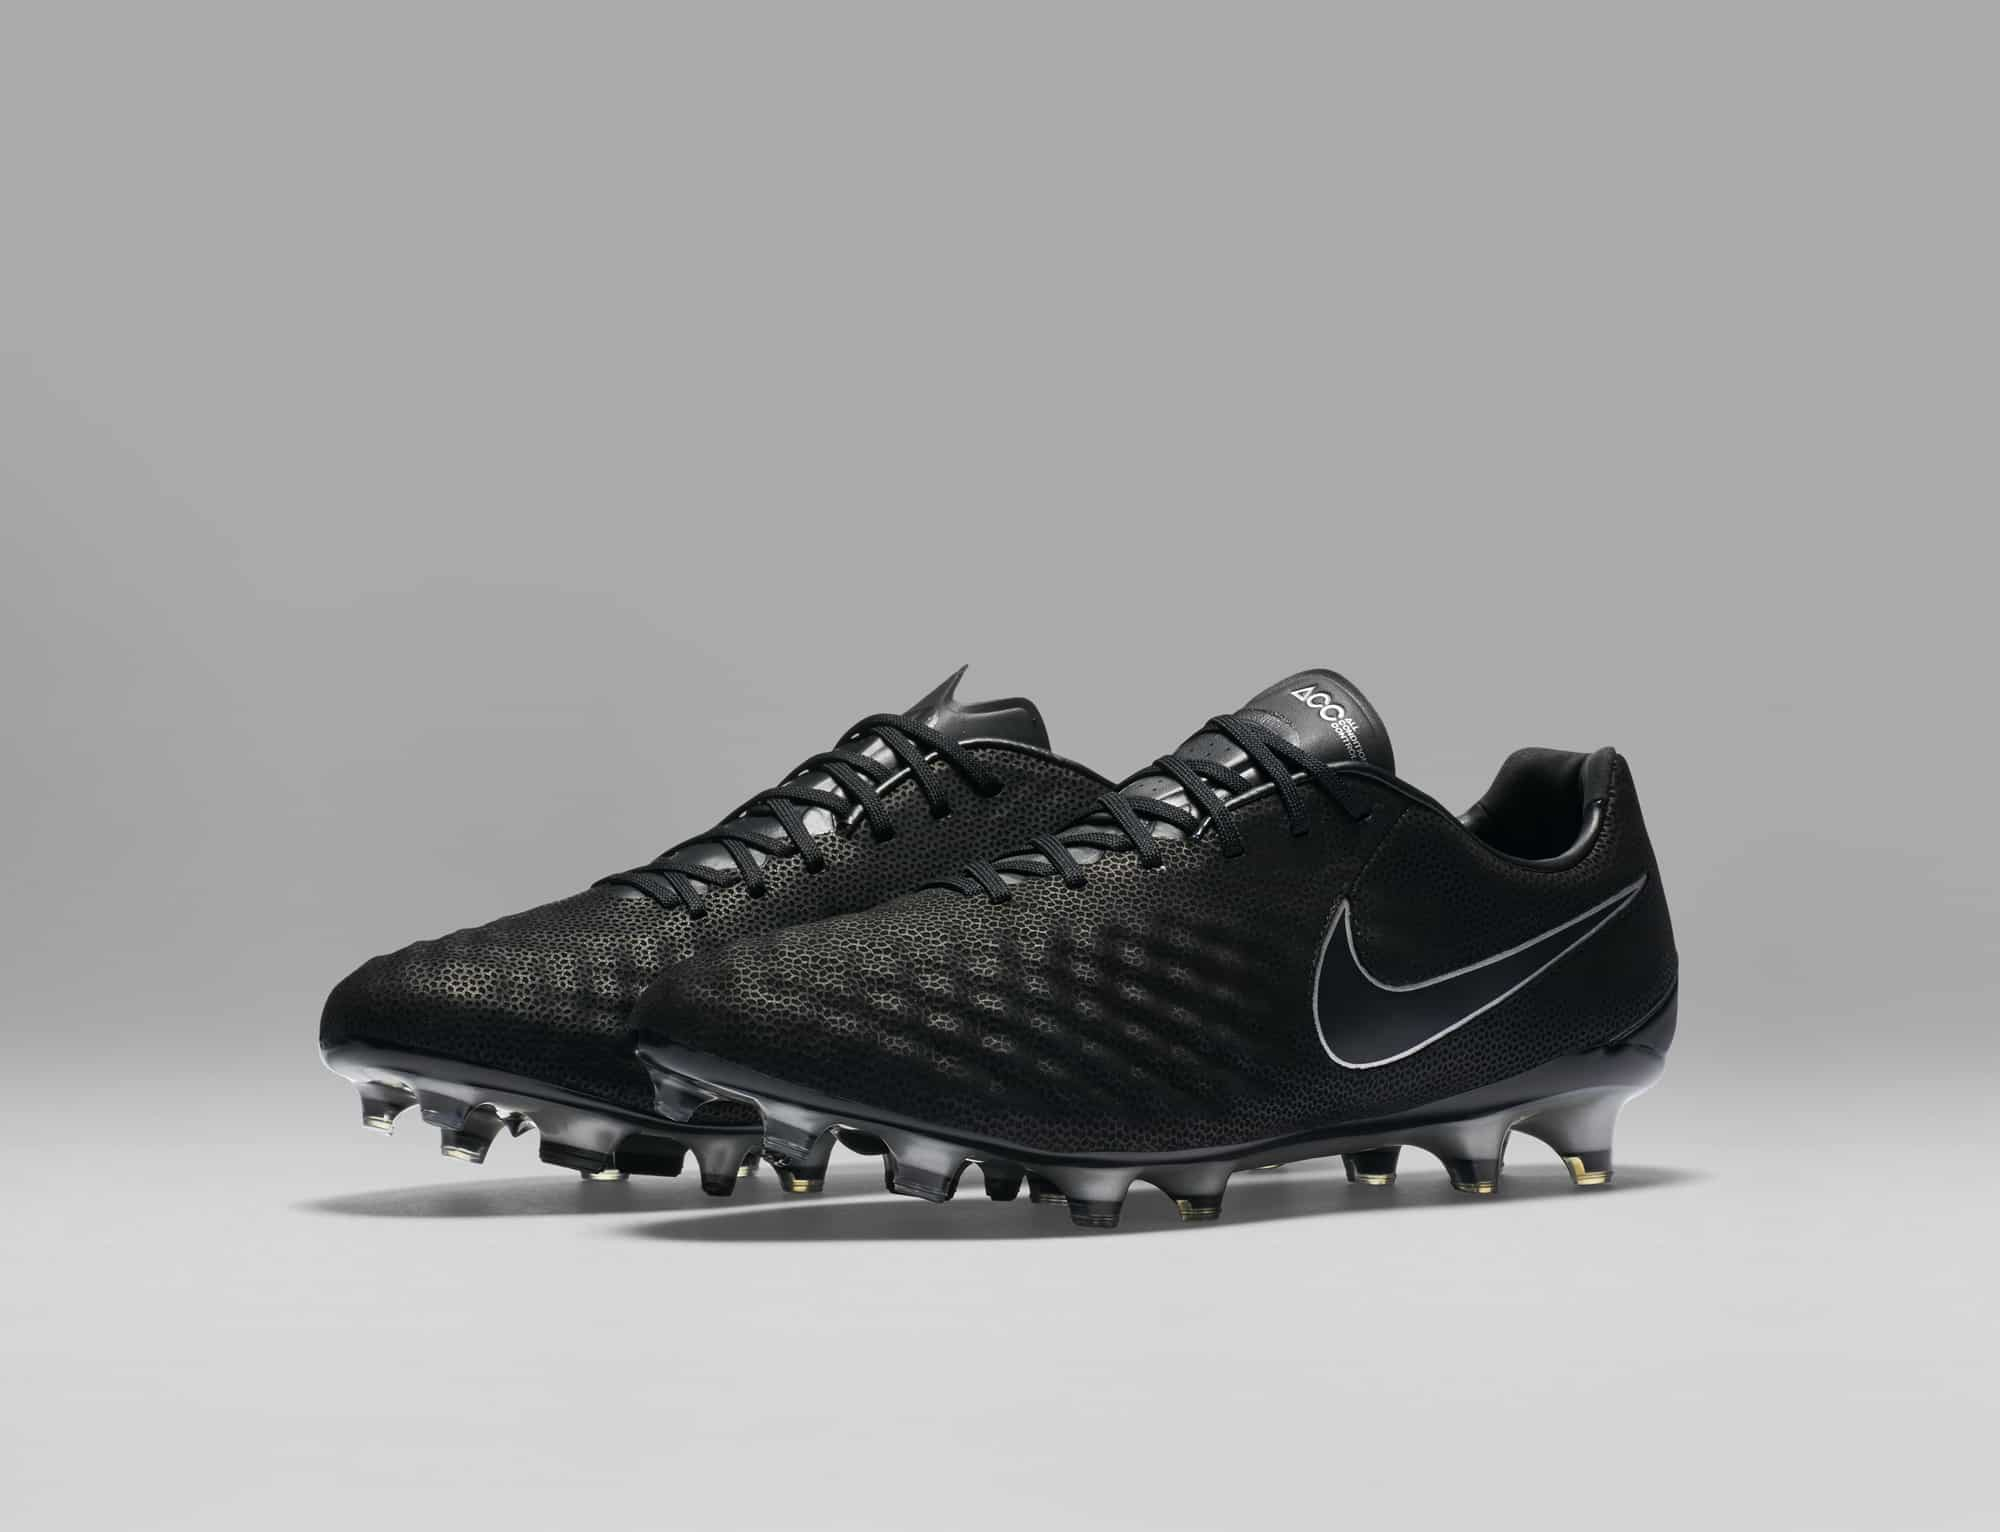 chaussures-football-nike-magista-opus-2-tech-craft-img1